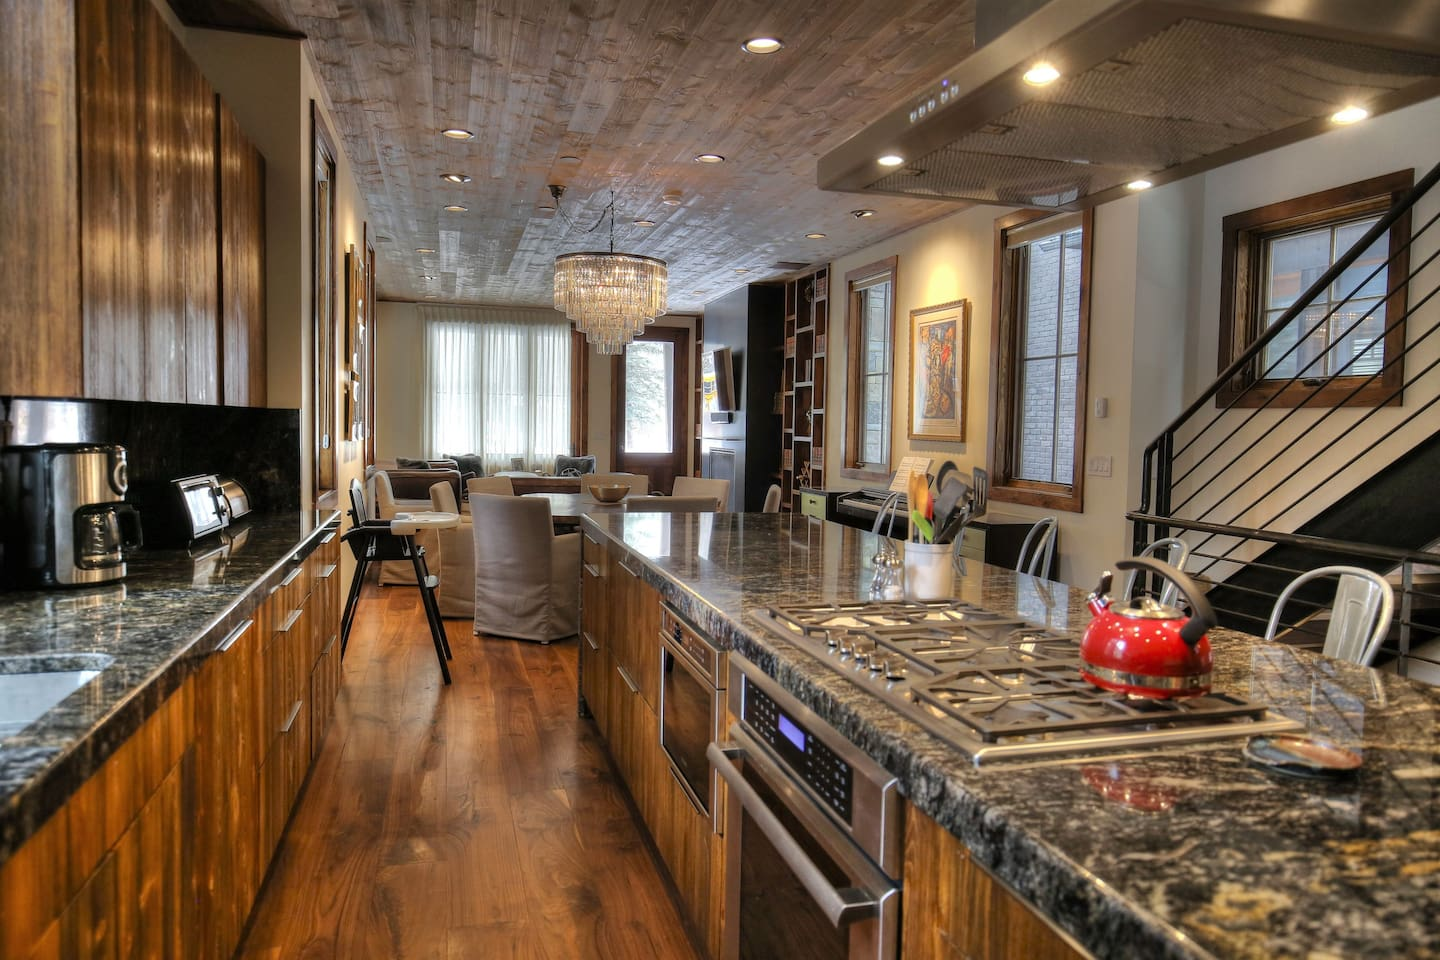 Fully equipped gourmet kitchen with lots of counter space.